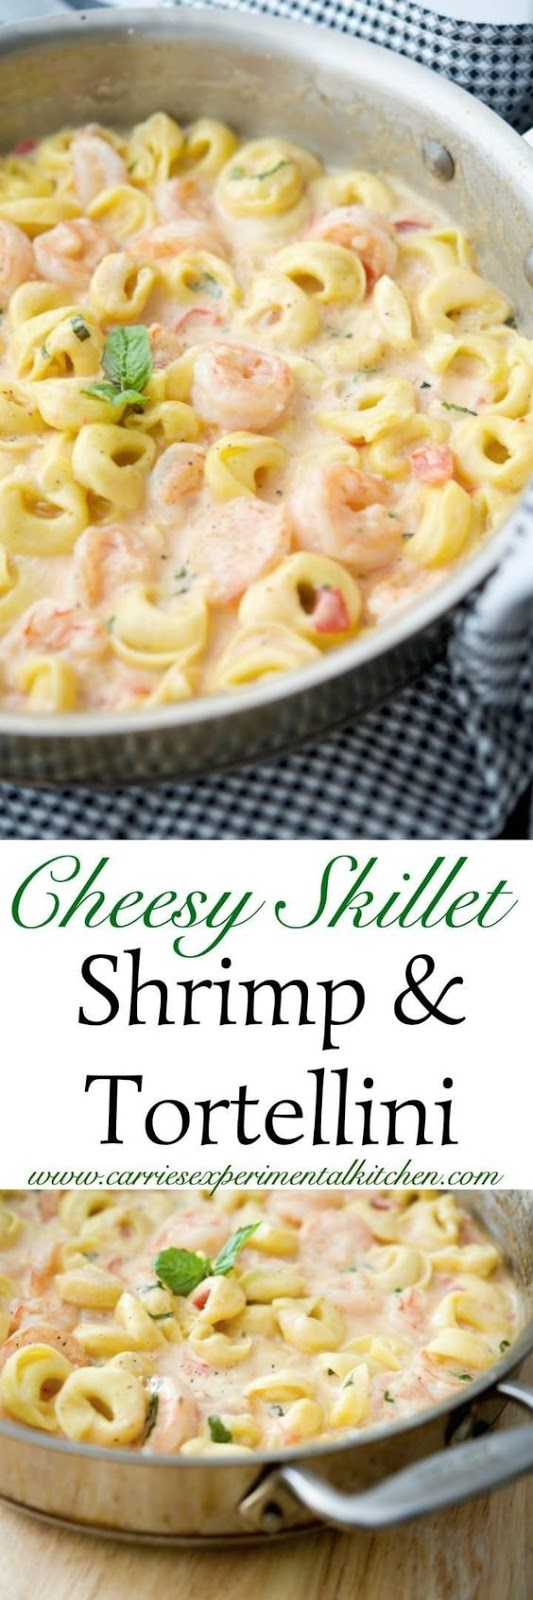 Cheesy Skillet Shrimp & Tortellini